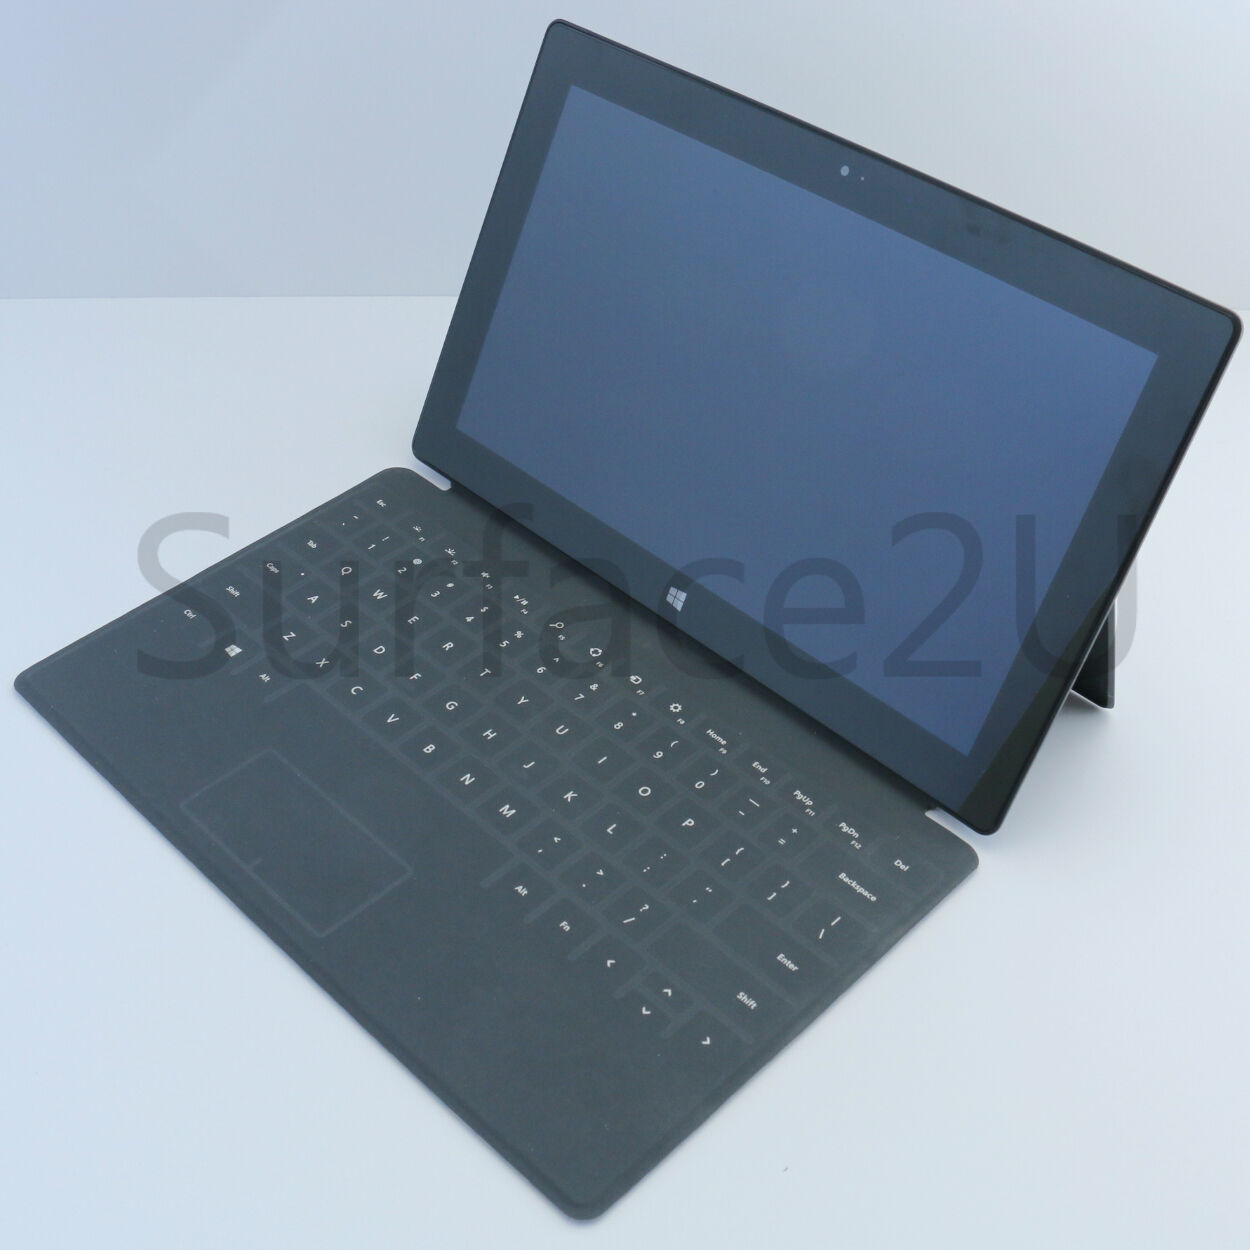 BUNDLE Microsoft Surface 2 32GB with MS Office 2013, Touch Cover Keyboard